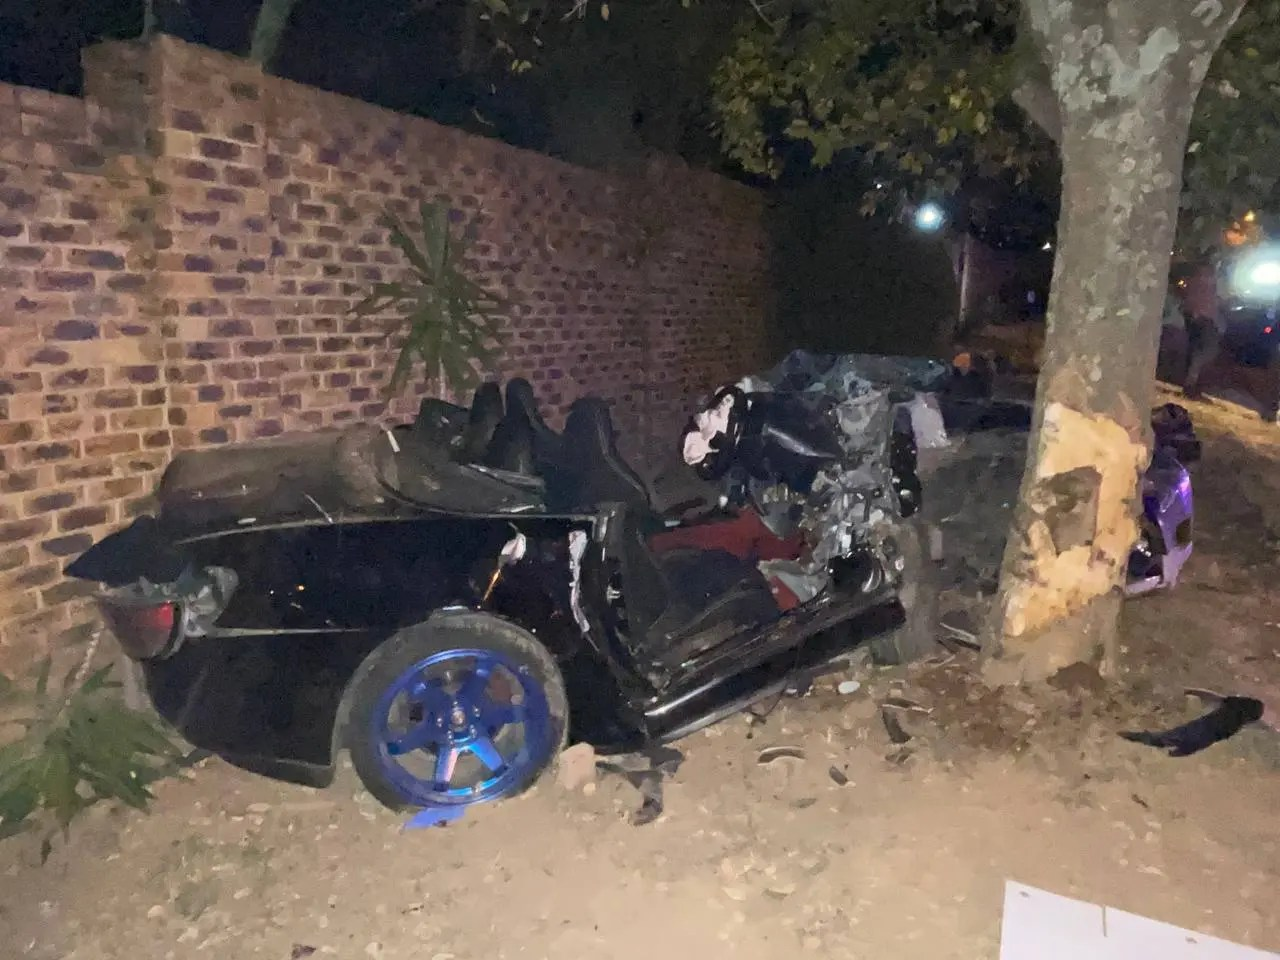 Driver seriously injured after crashing into tree